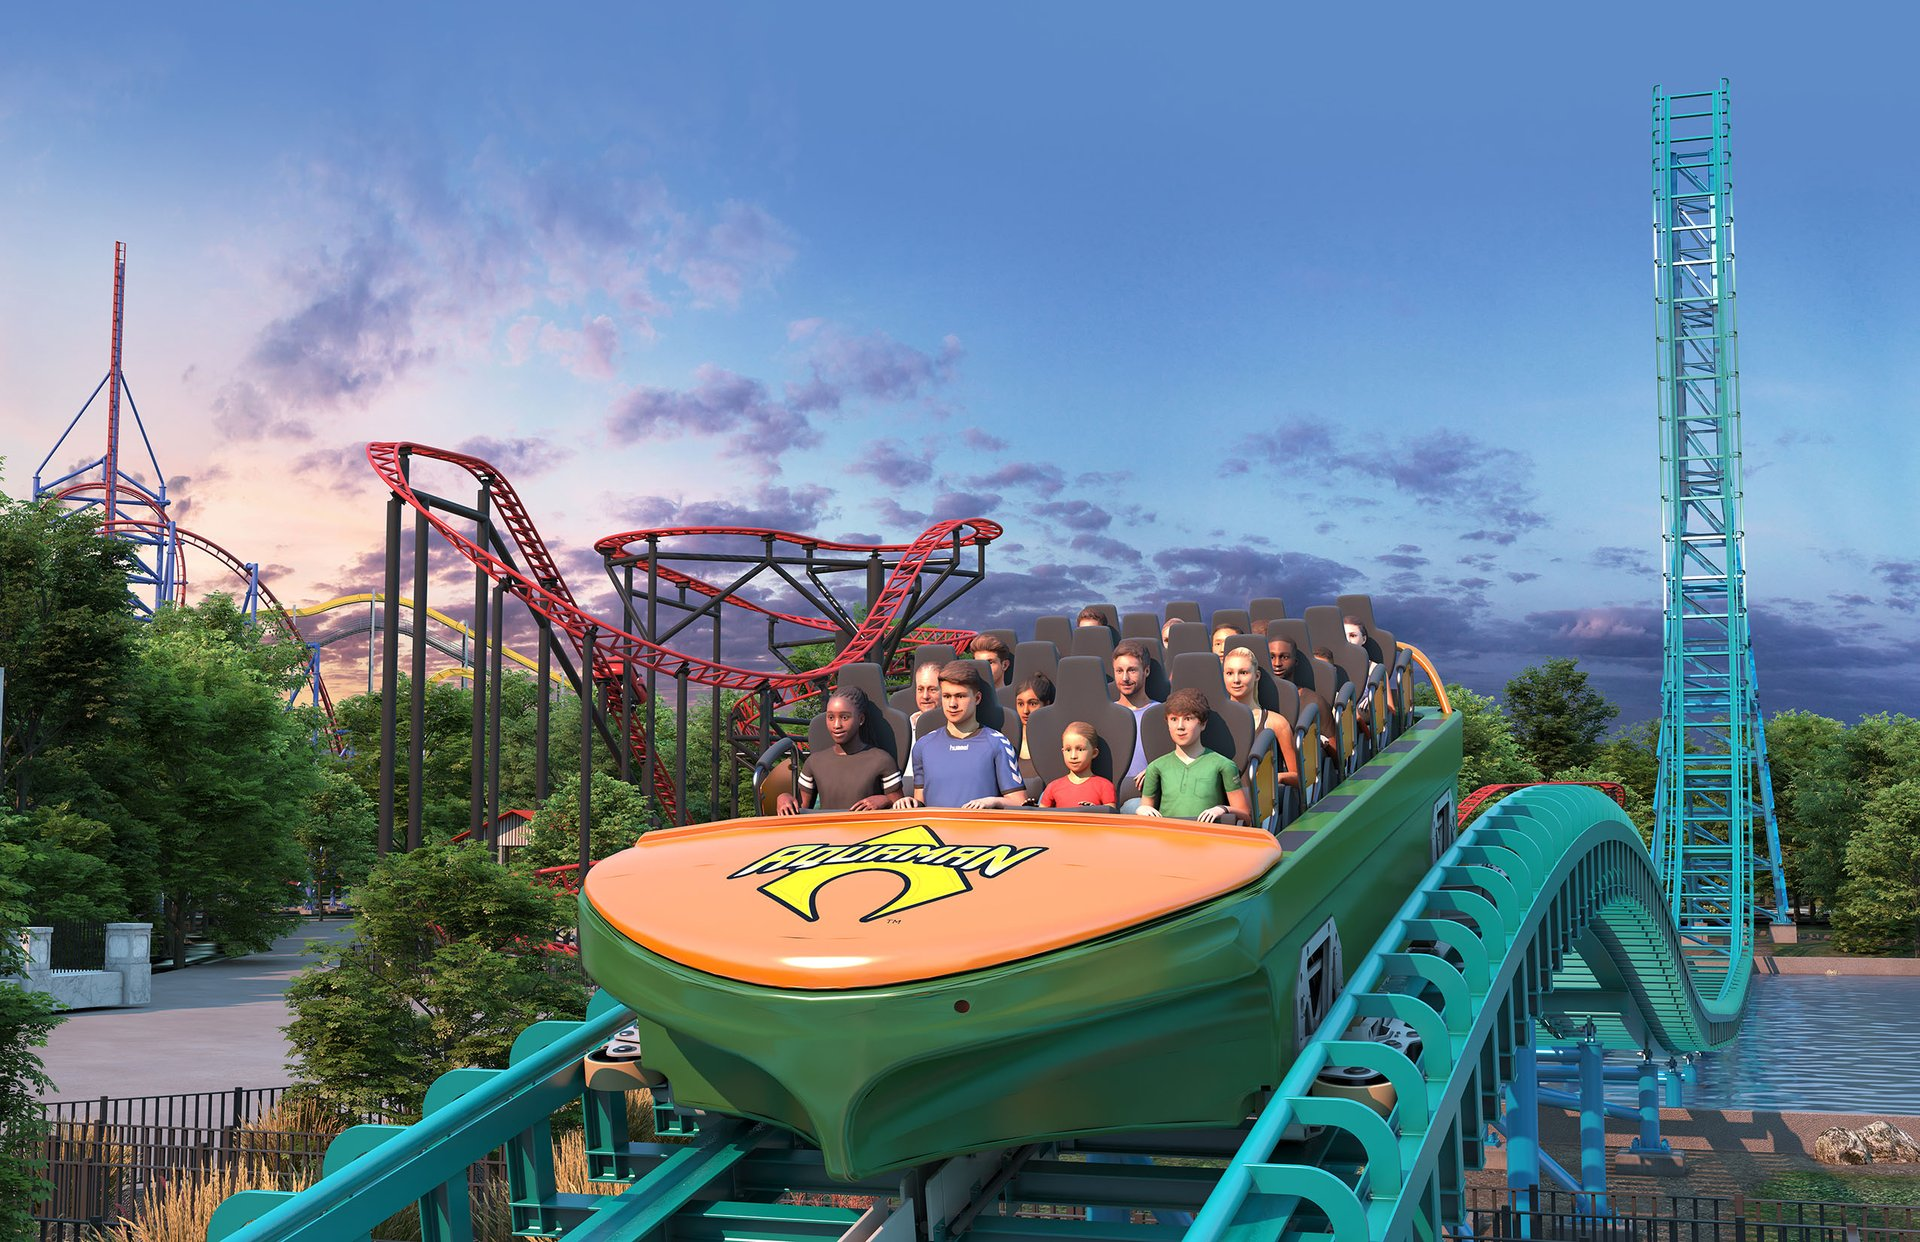 Aquaman: Power Wave holds 20 riders per cycle.